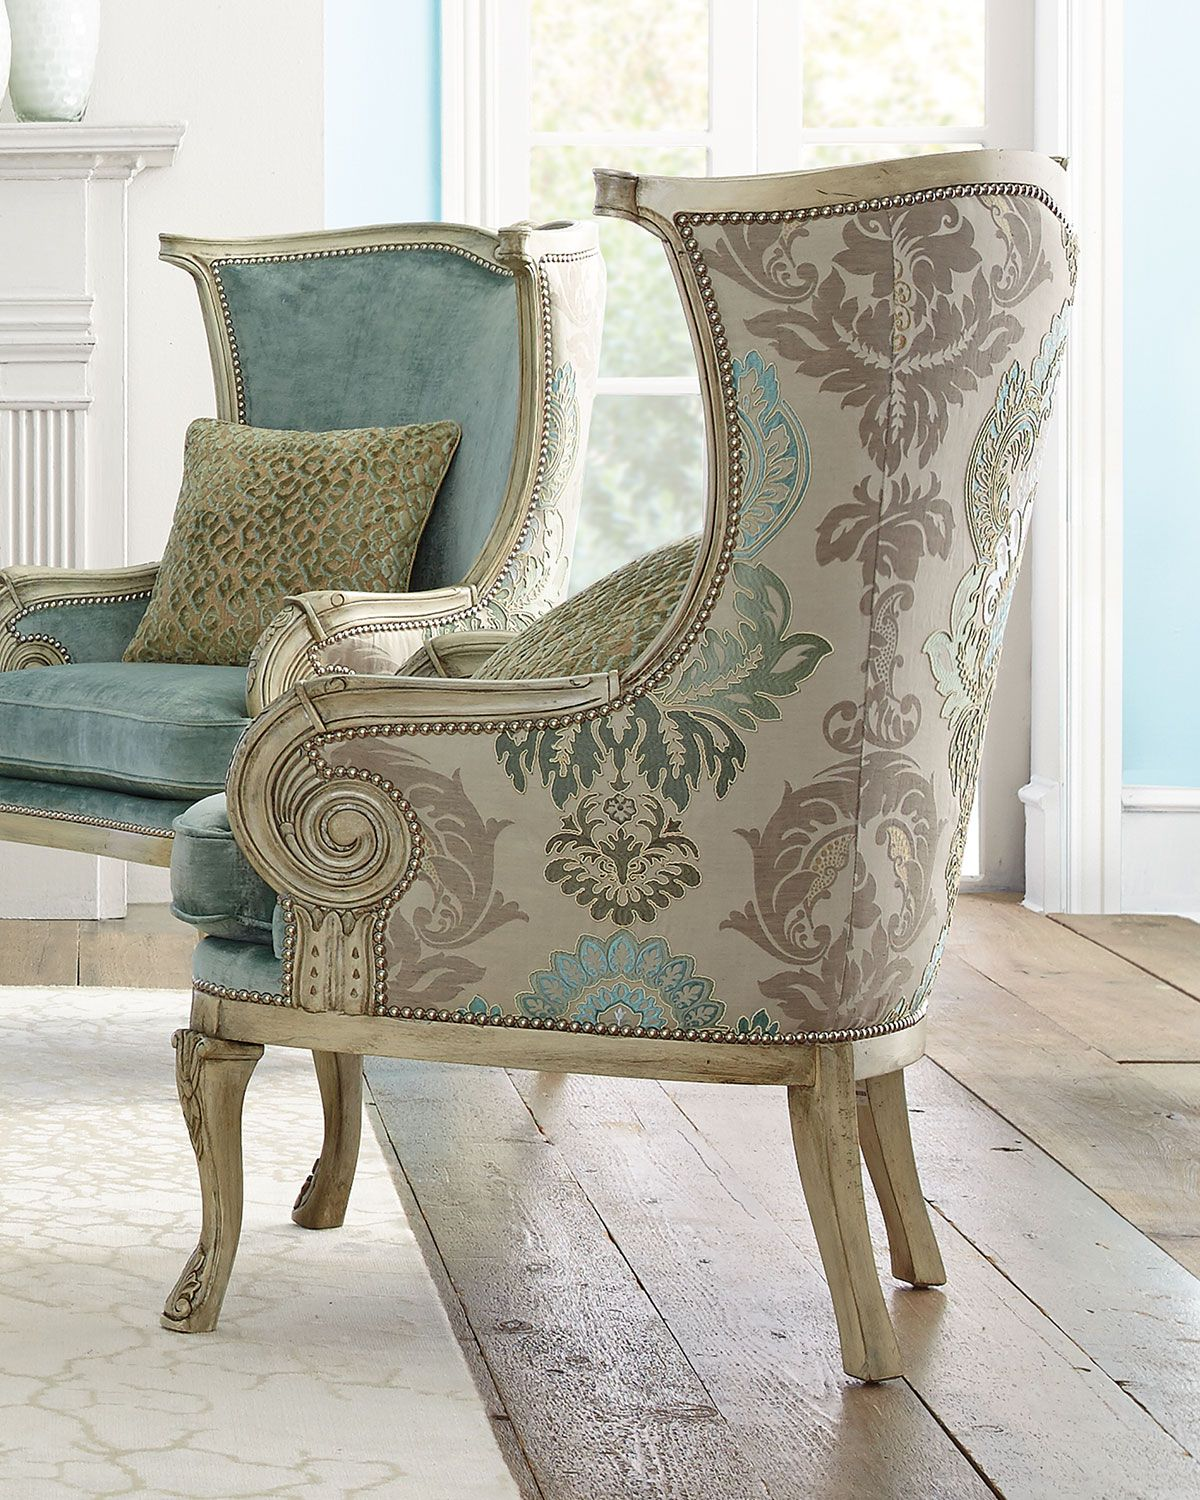 Damask Chair Silver Damask Chair In 2019 Design Style New Traditional